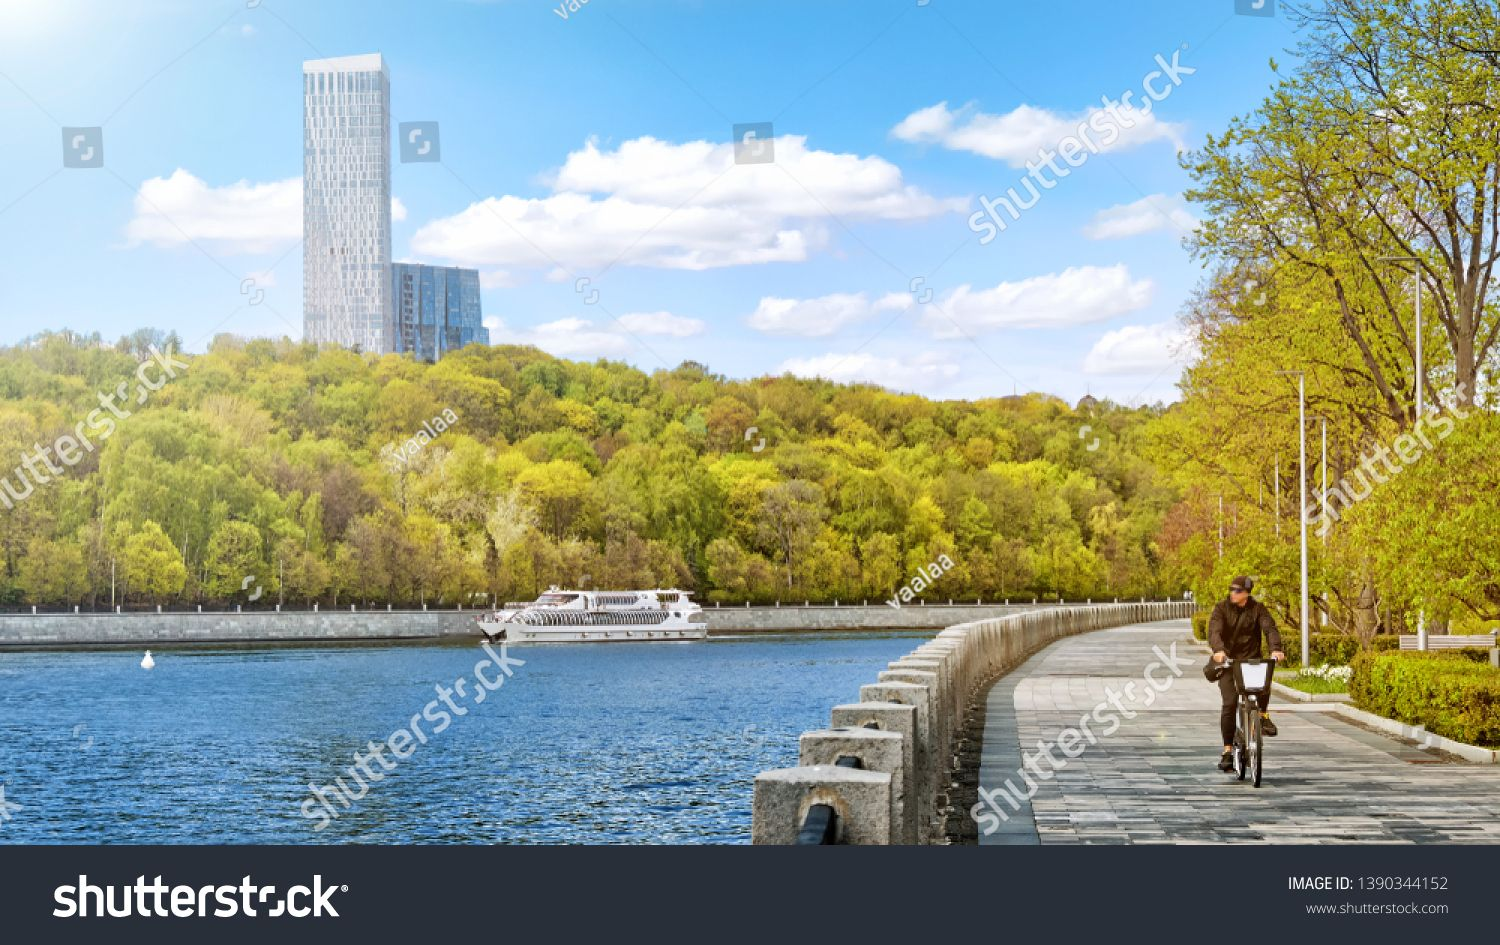 Moscow City Russia Park On Moskva River Embankment Street With Bike Lane Panorama View Of Modern Town Road Person Riding Bicycle On Sunn City Park Stock Photos